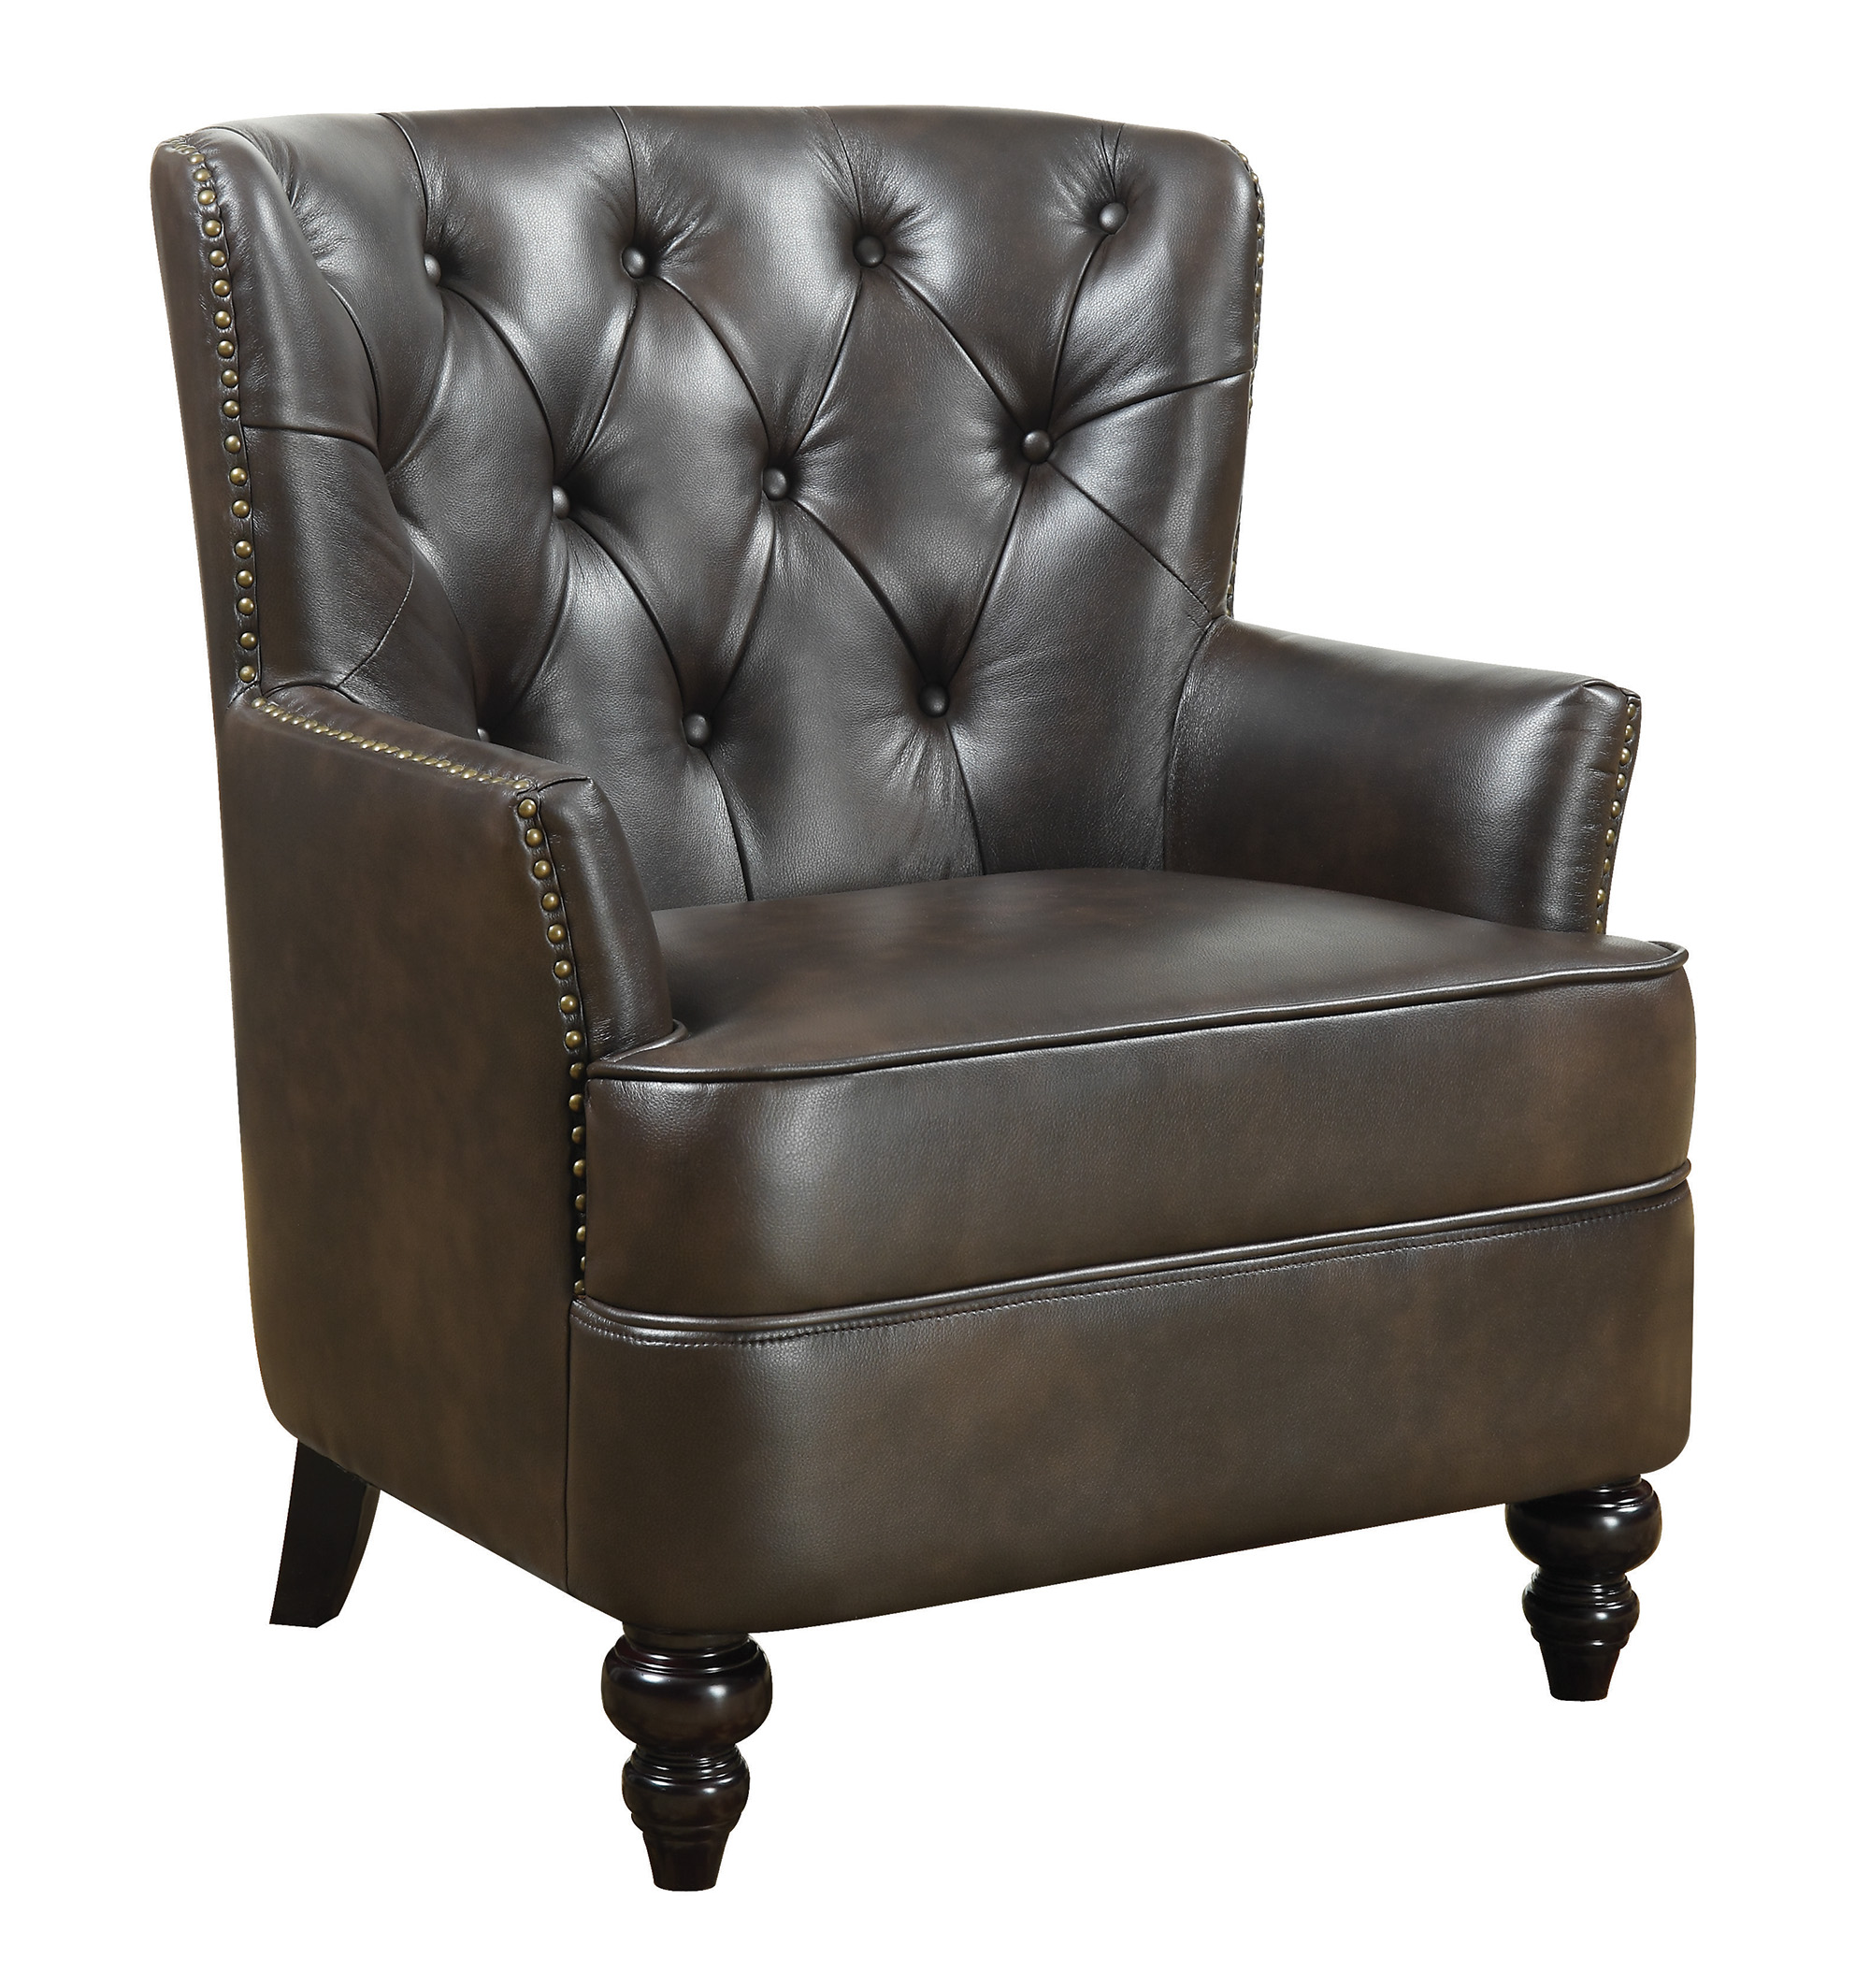 Upholstered Accent Chair With Diamond Tufting